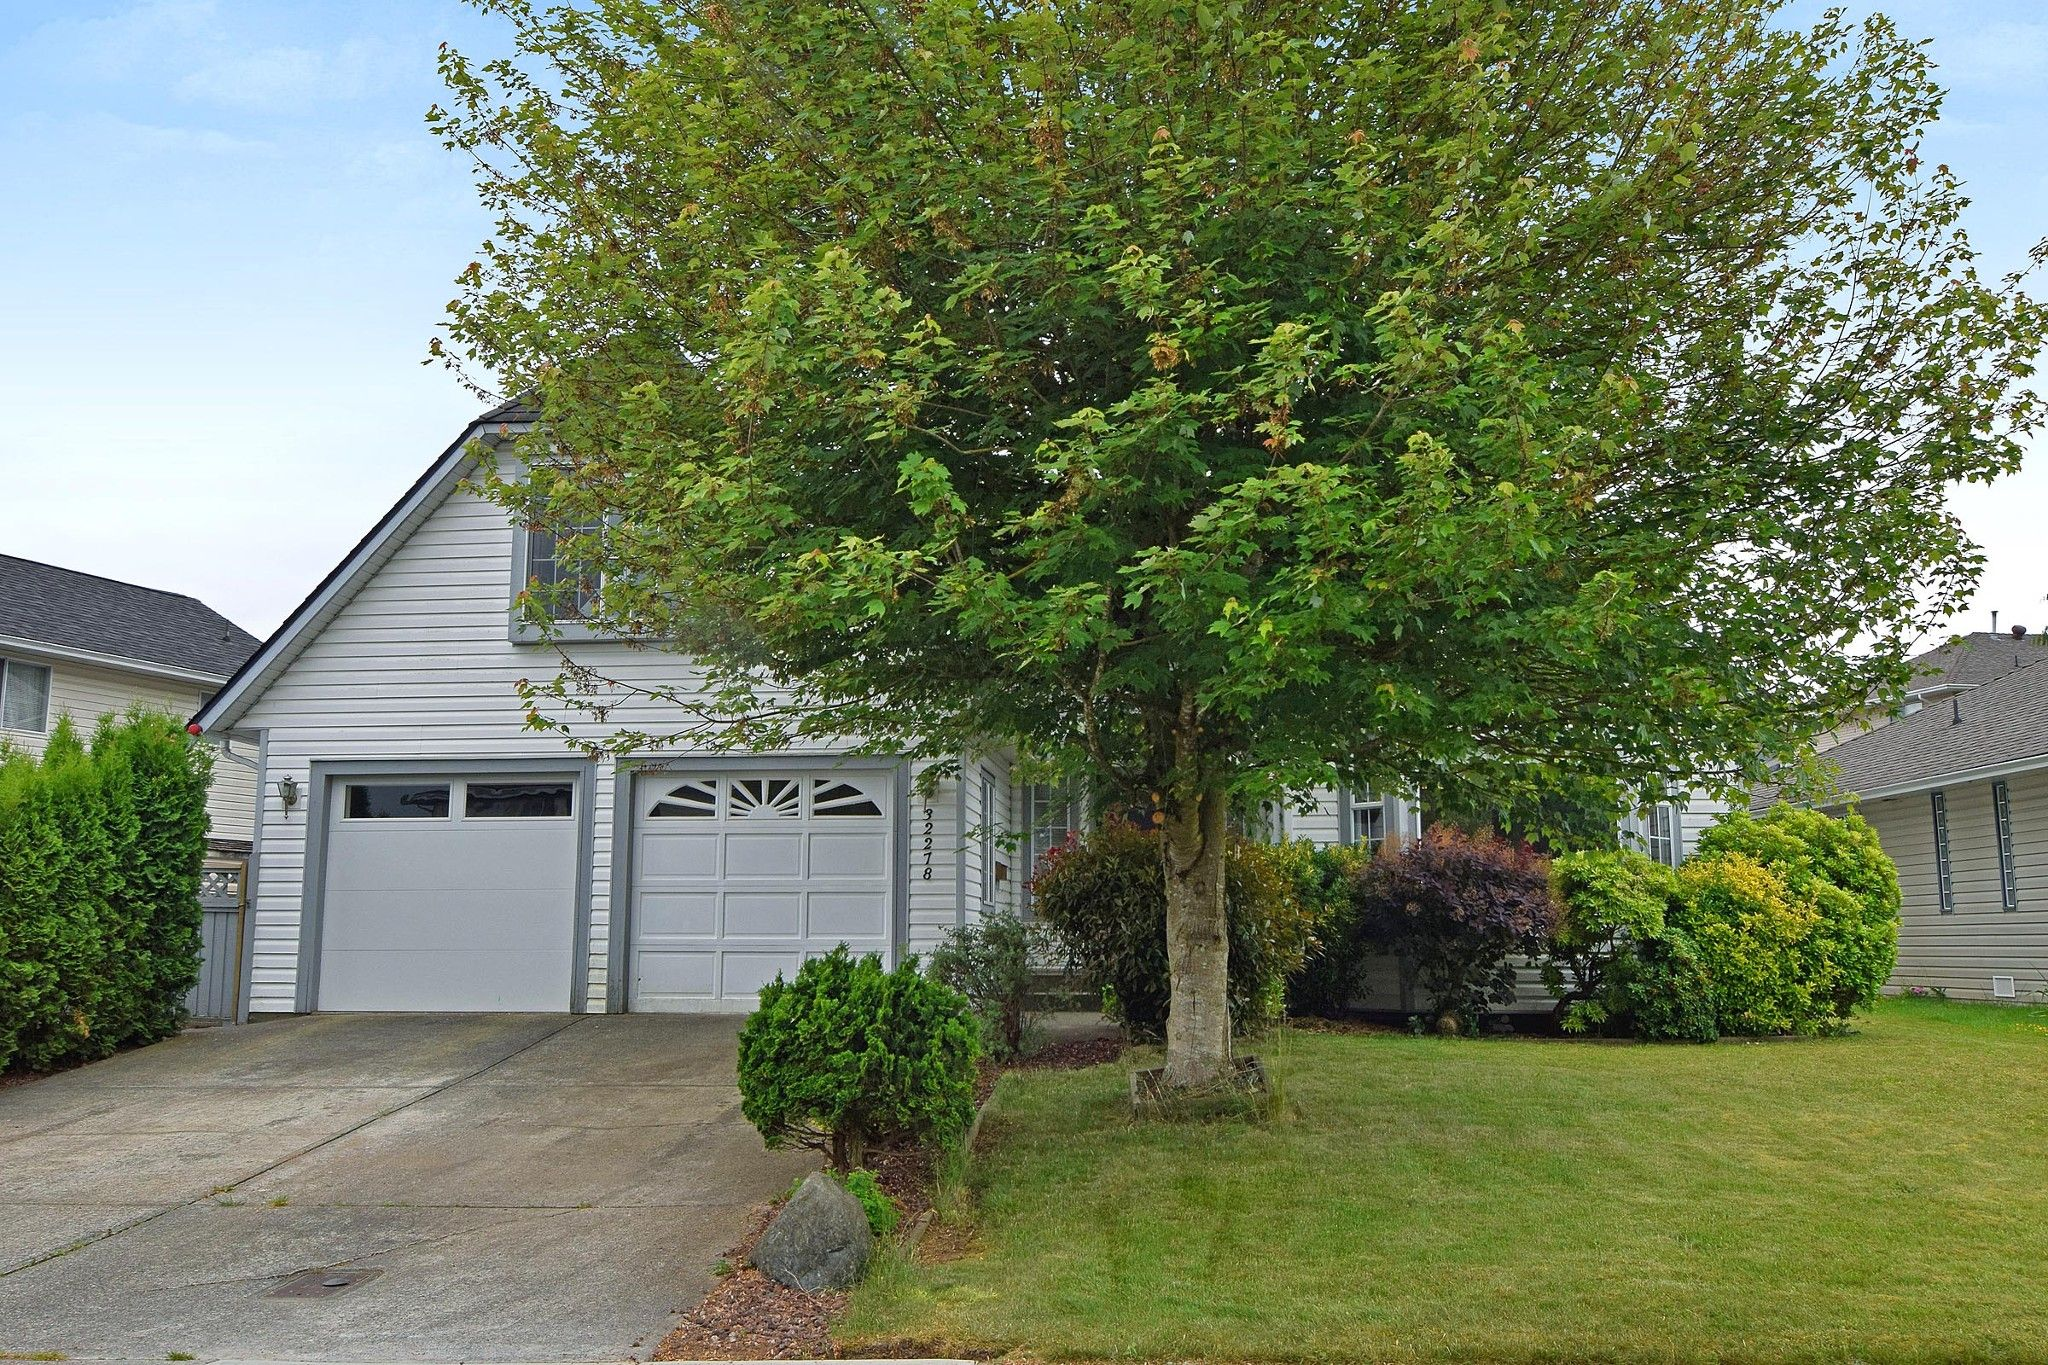 """Main Photo: 32278 ROGERS Avenue in Abbotsford: Abbotsford West House for sale in """"Fairfield Estates"""" : MLS®# R2275565"""